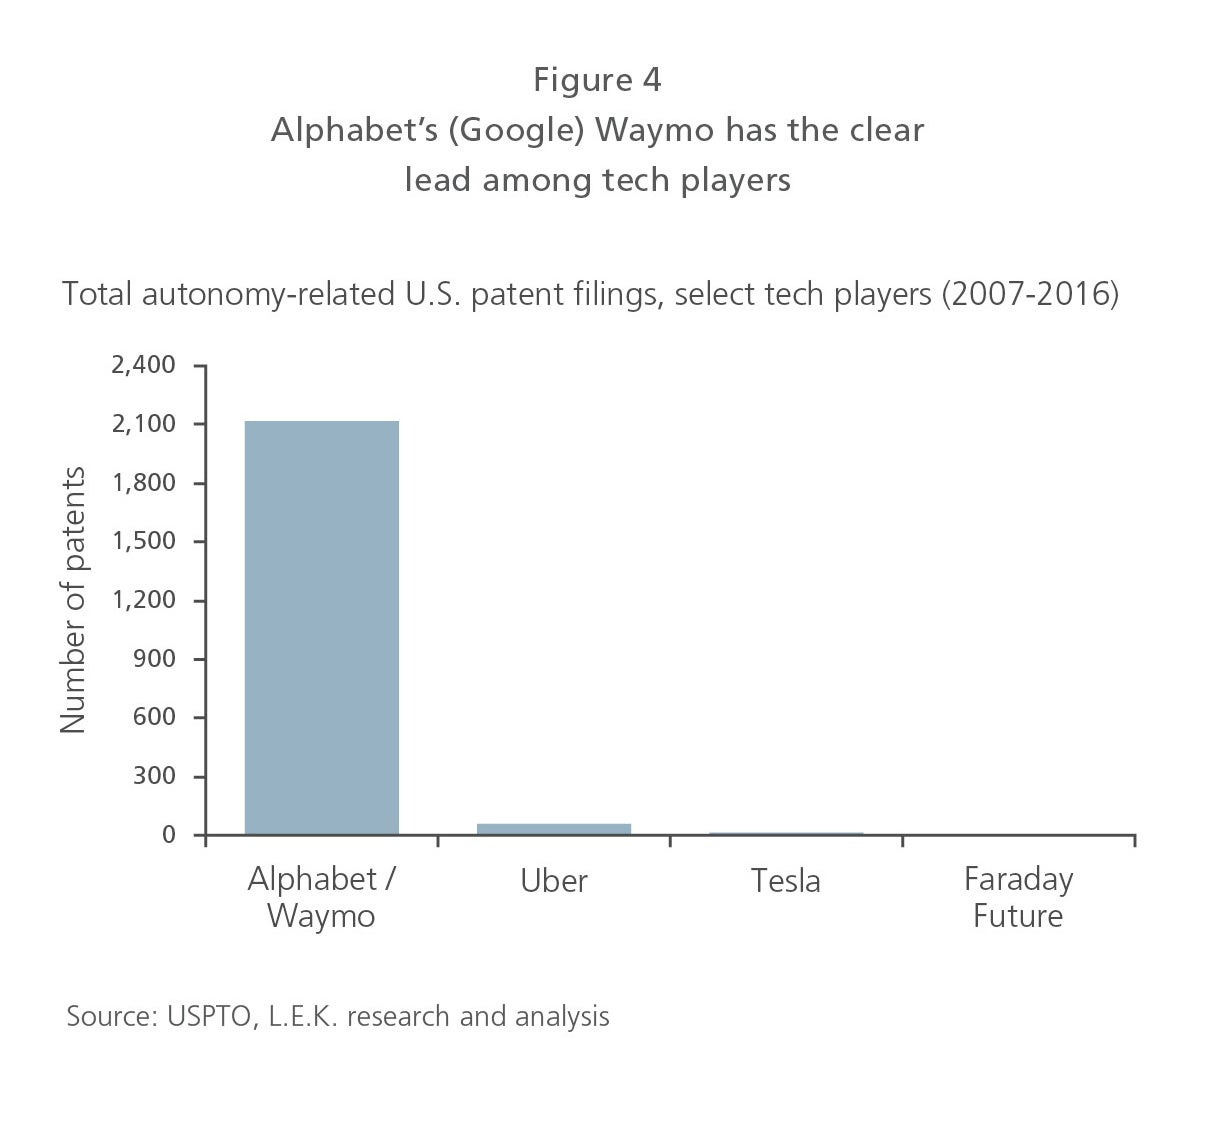 Alphabet's (Google) Waymo has the clear lead among tech players